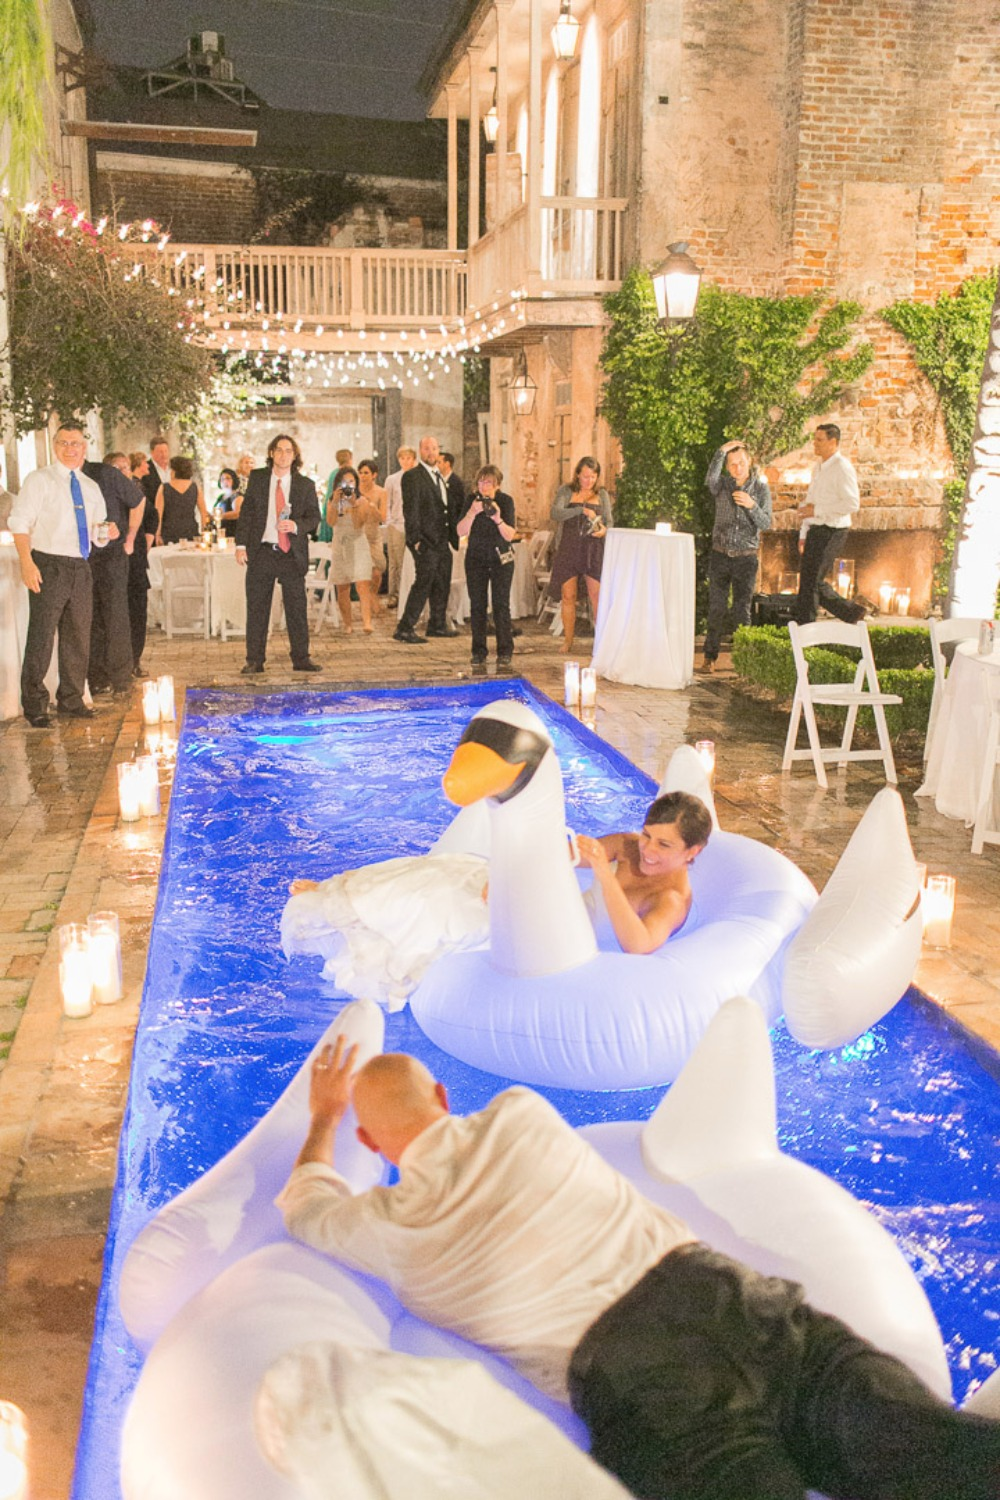 inflatable swan floats for an impromptu pool party